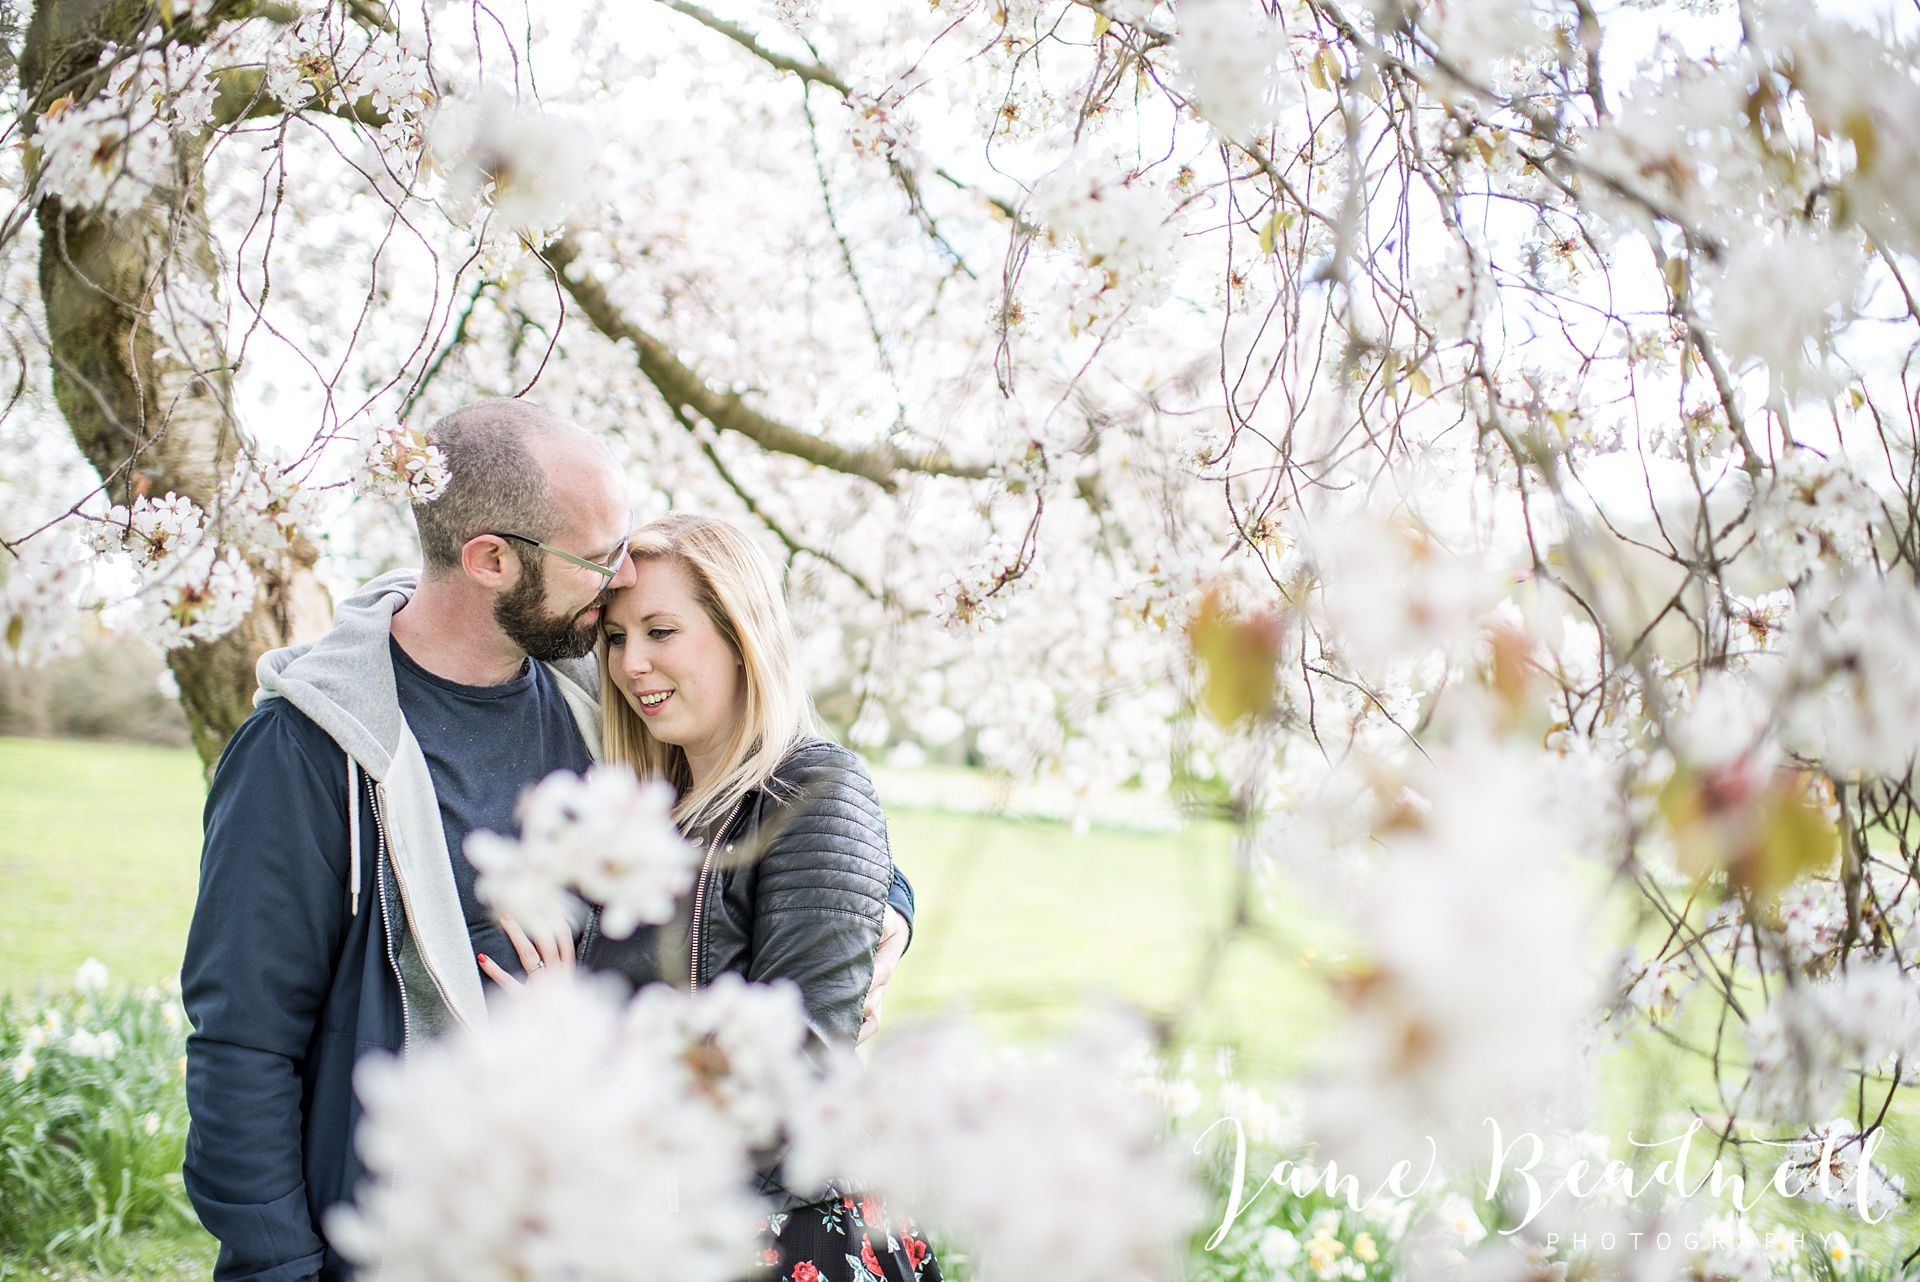 Temple Newsam engagement photography by Jane Beadnell Wedding Photography_0005